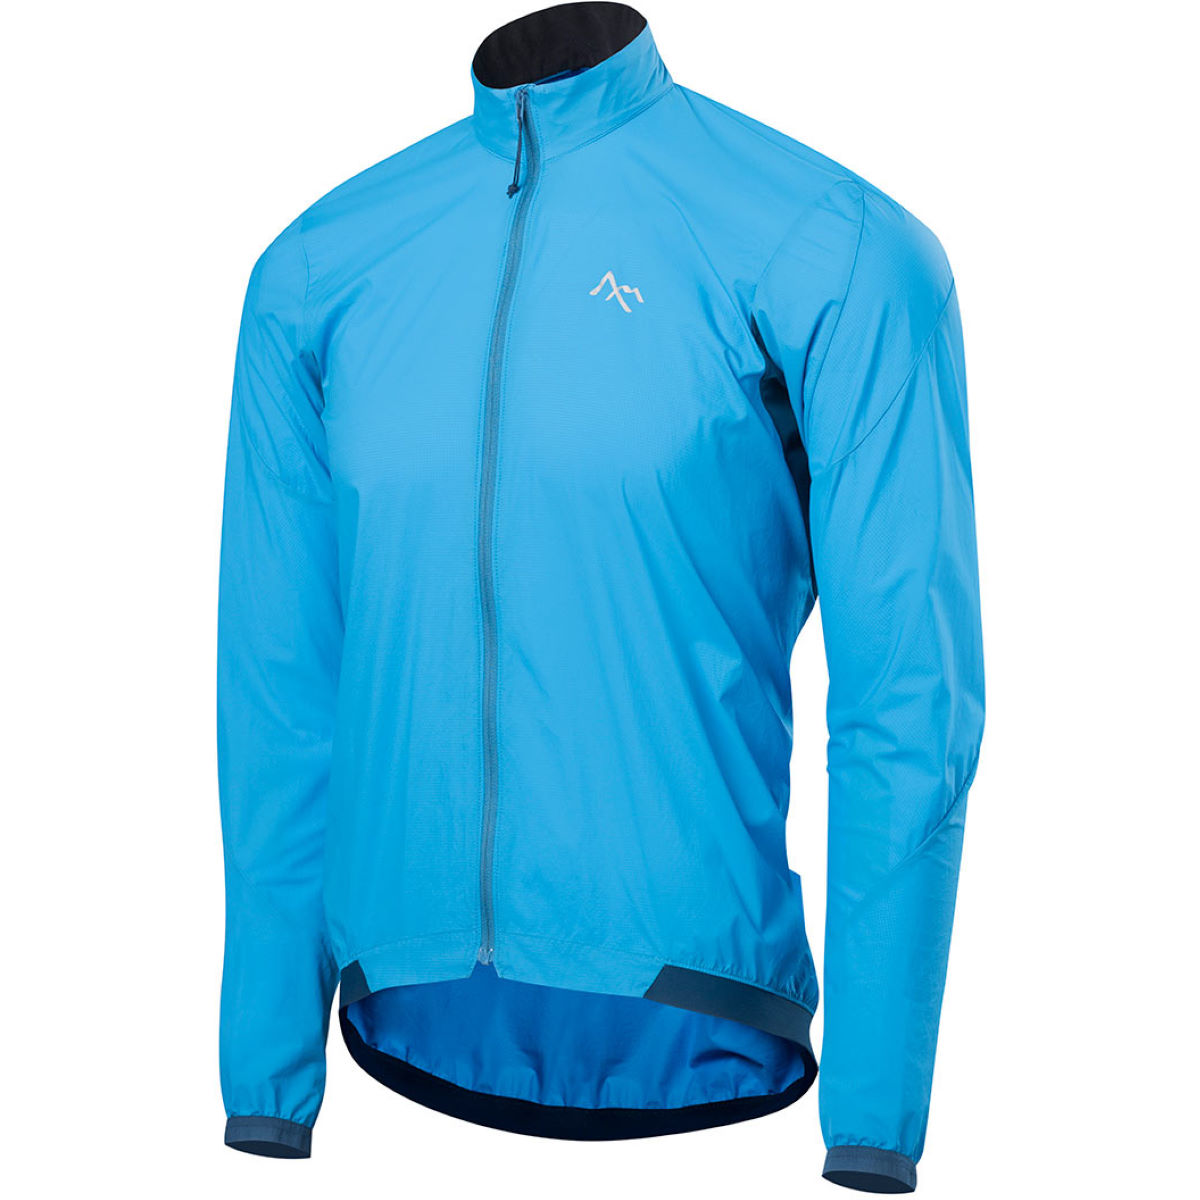 Veste 7Mesh Northwoods - M Blue Ox Coupe-vents vélo